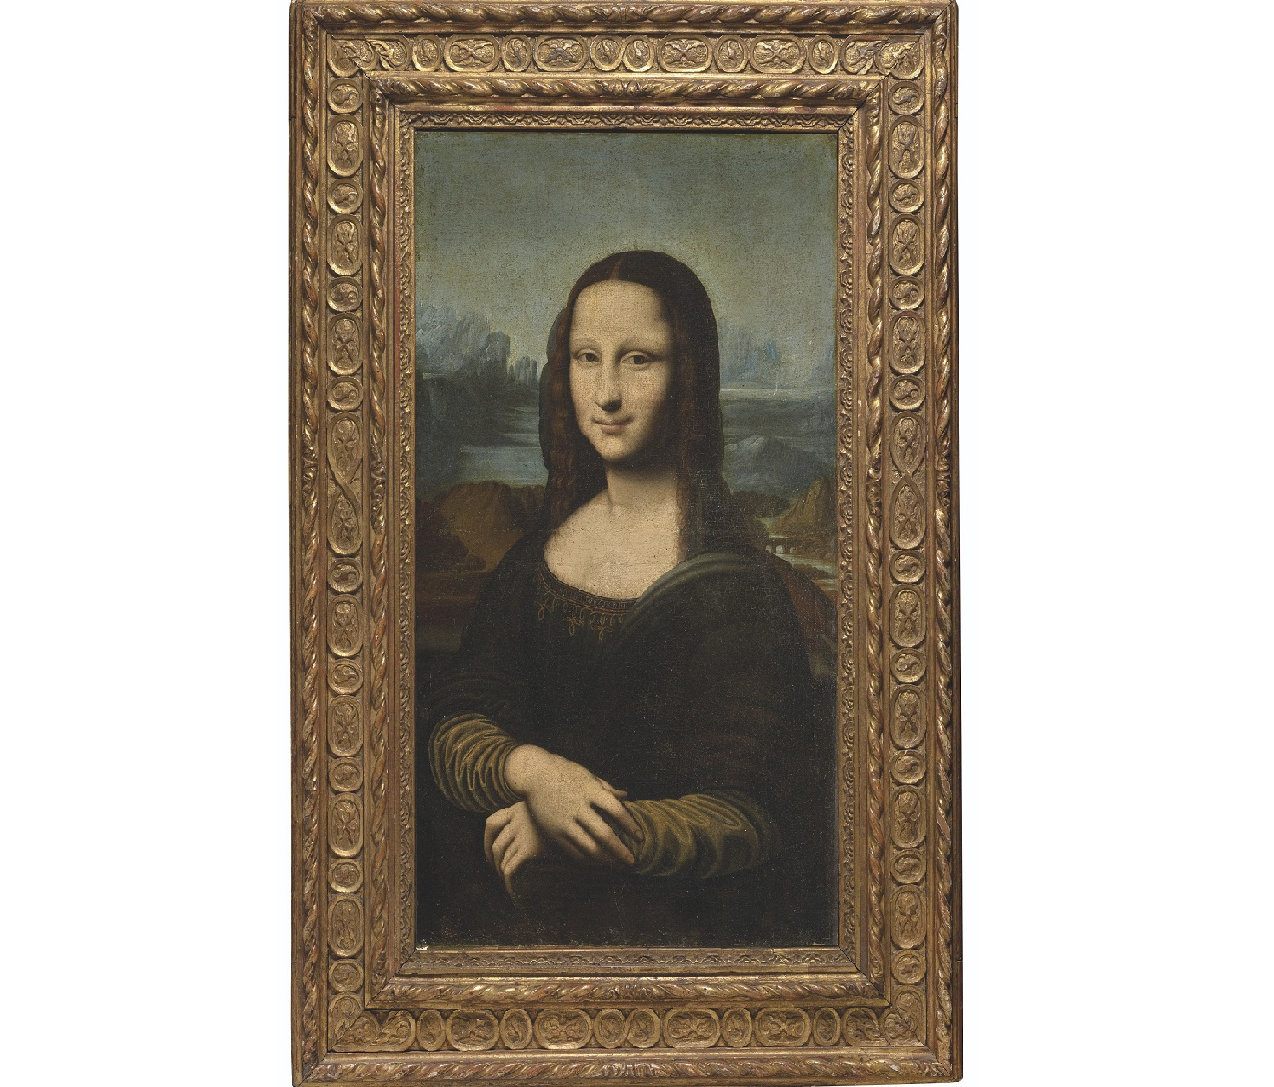 The 'Hekking Mona Lisa' is estimated to fetch €200,000 to €300,000 when it goes up for auction at Christie's. ― Picture courtesy of Christie's via ETX Studio